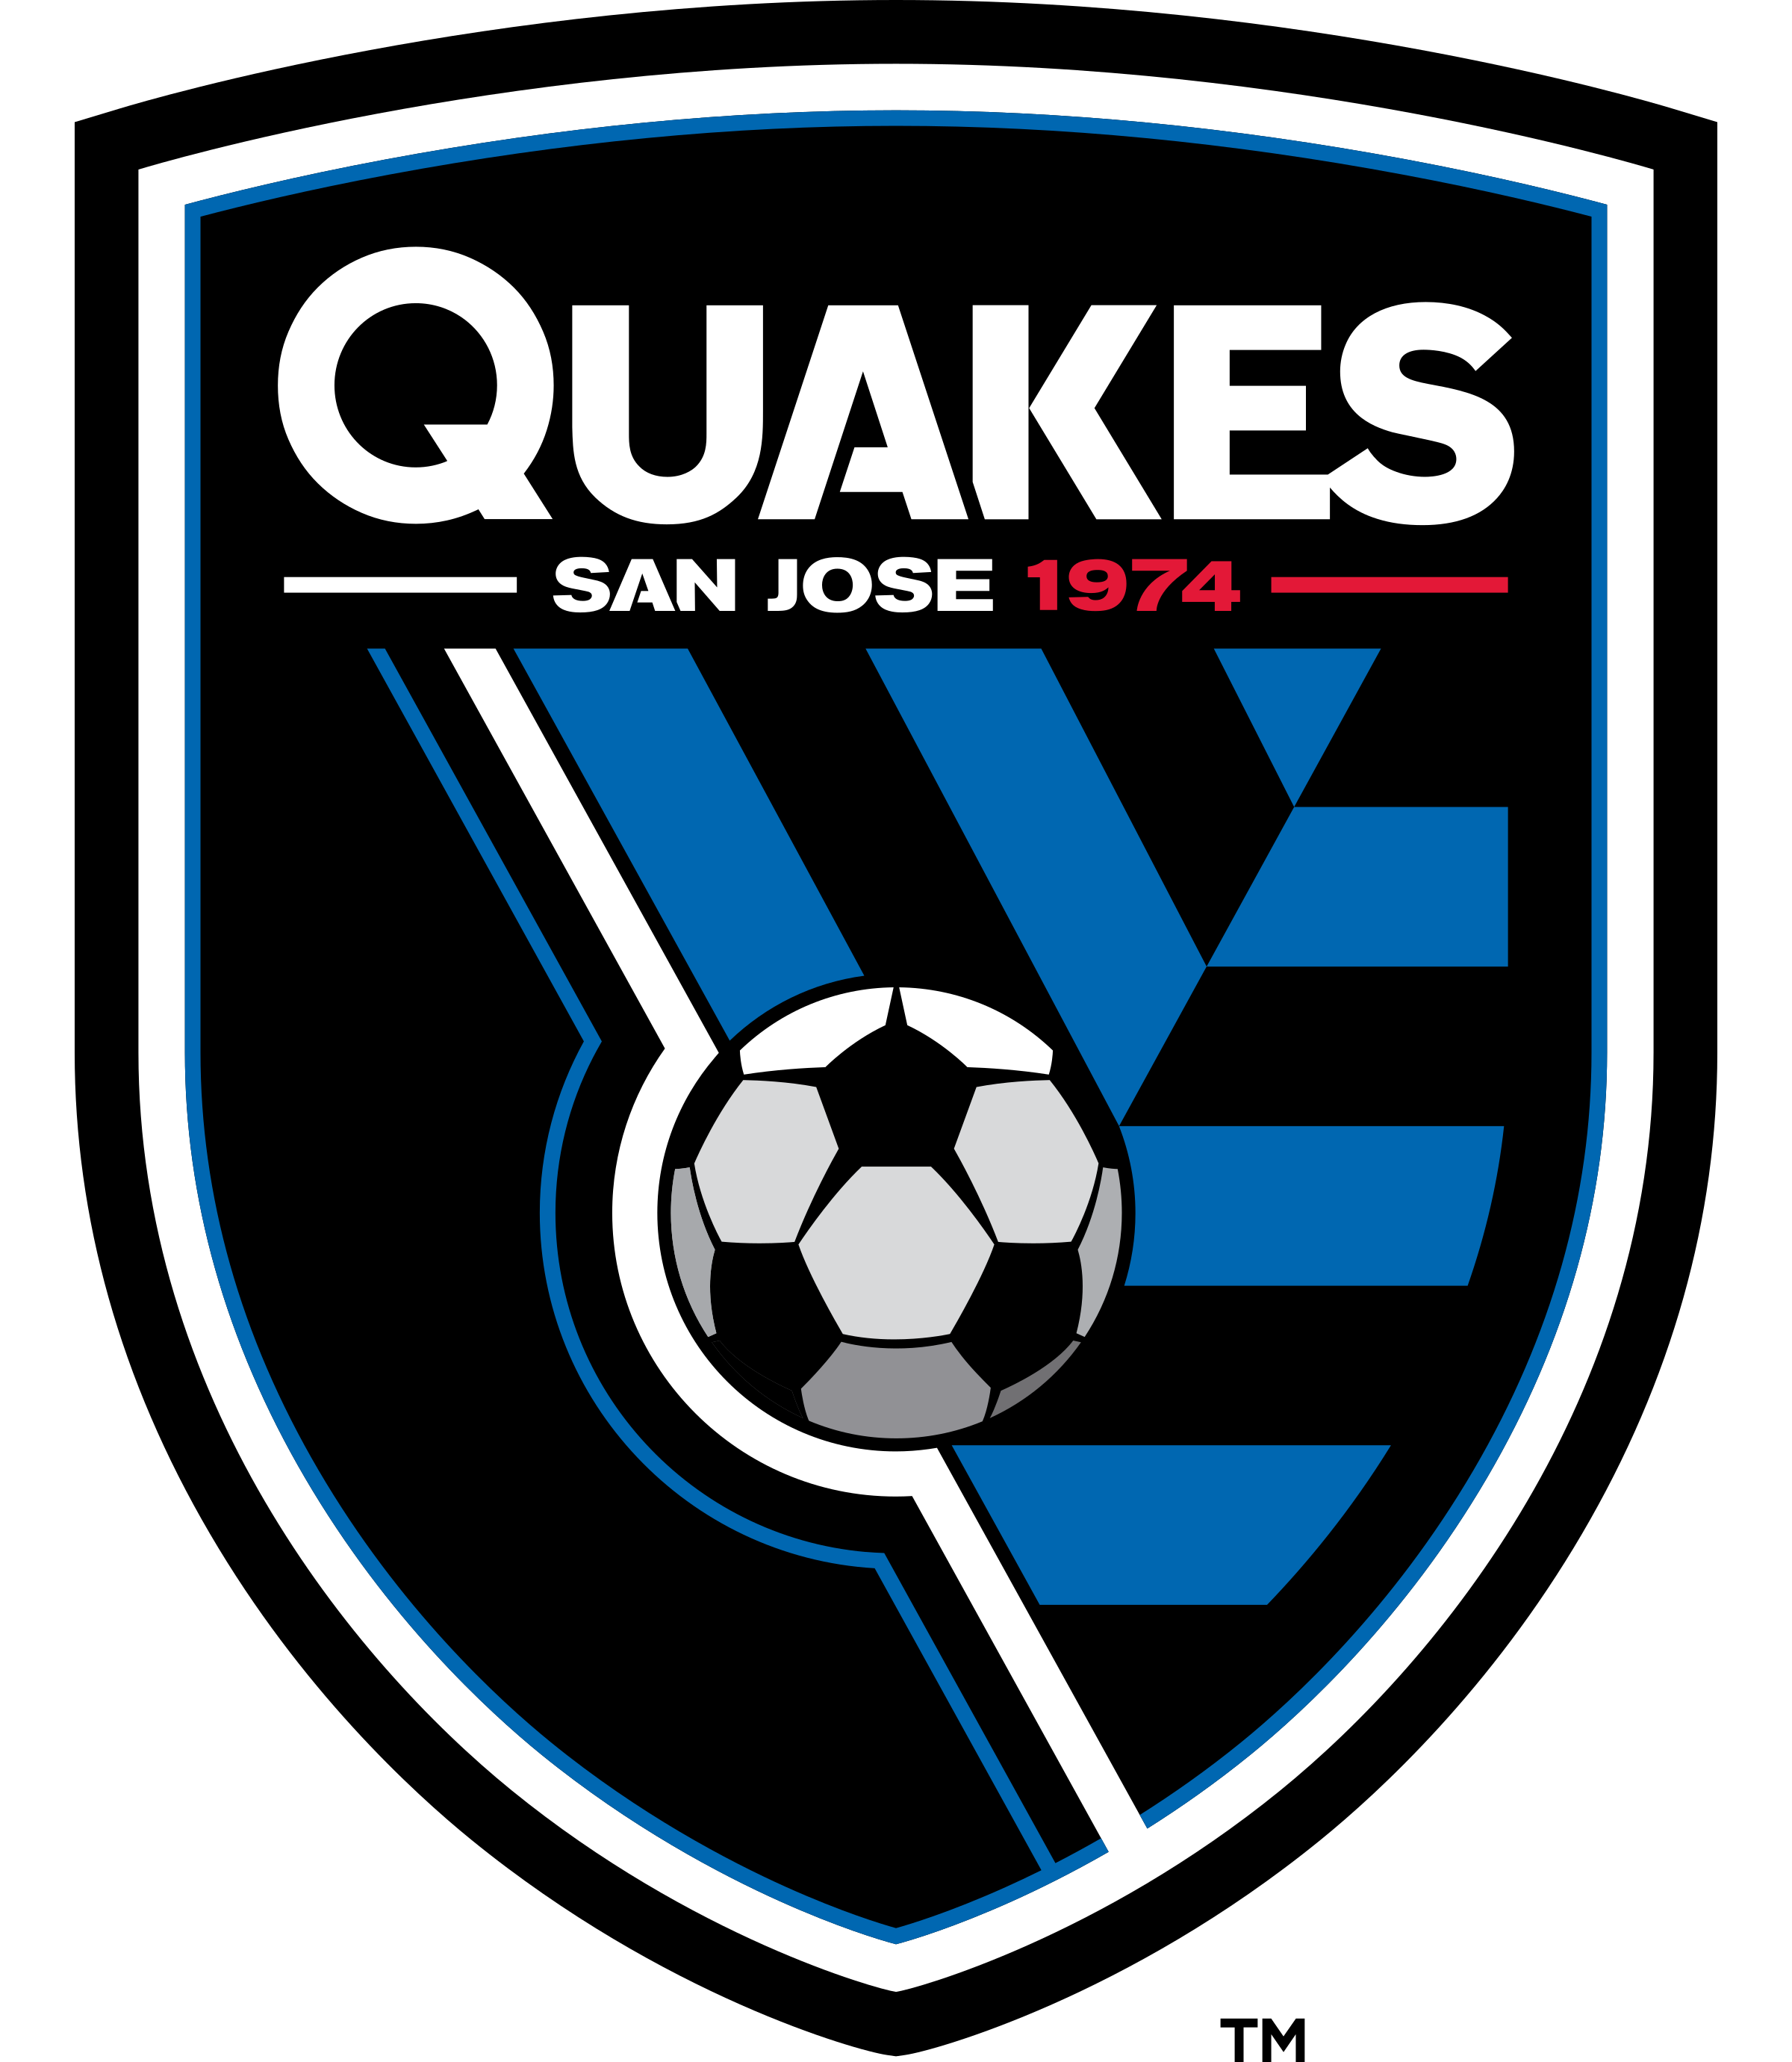 San Jose Png - San Jose Earthquakes Logo PNG Transparent & SVG Vector - Freebie ...